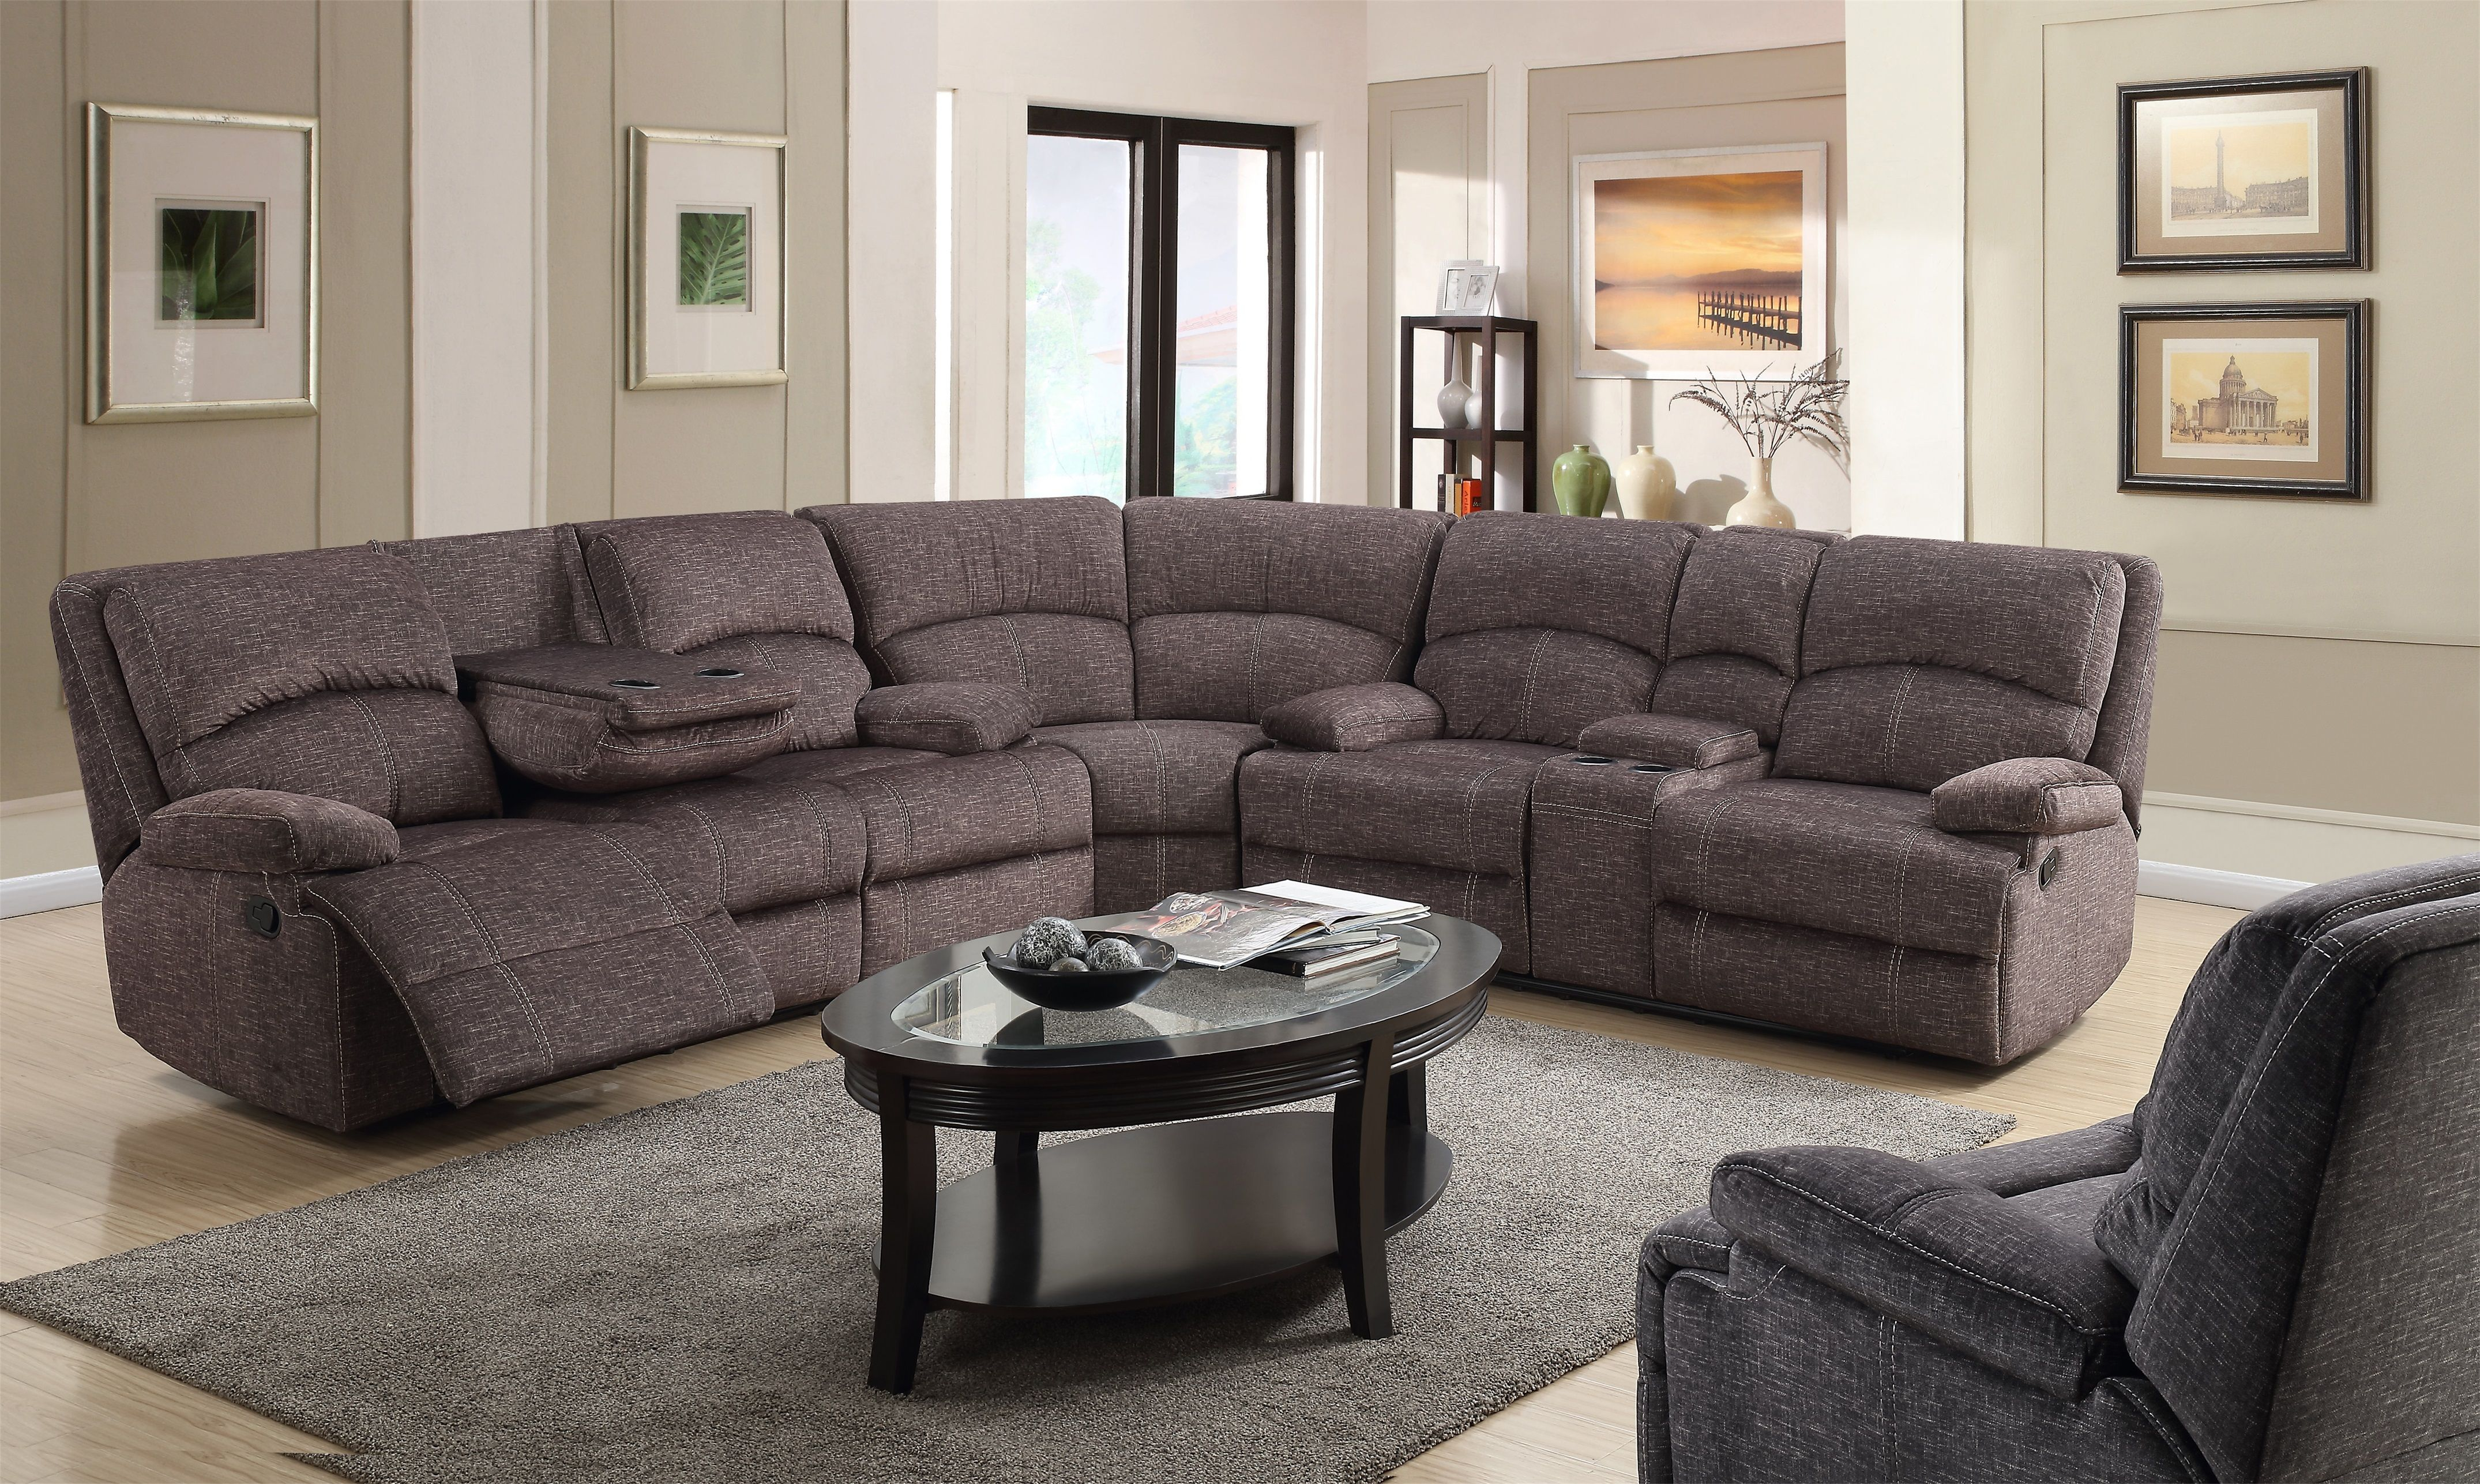 Boston 3 Pc Reclining Sectional Reclining Sectional New Living